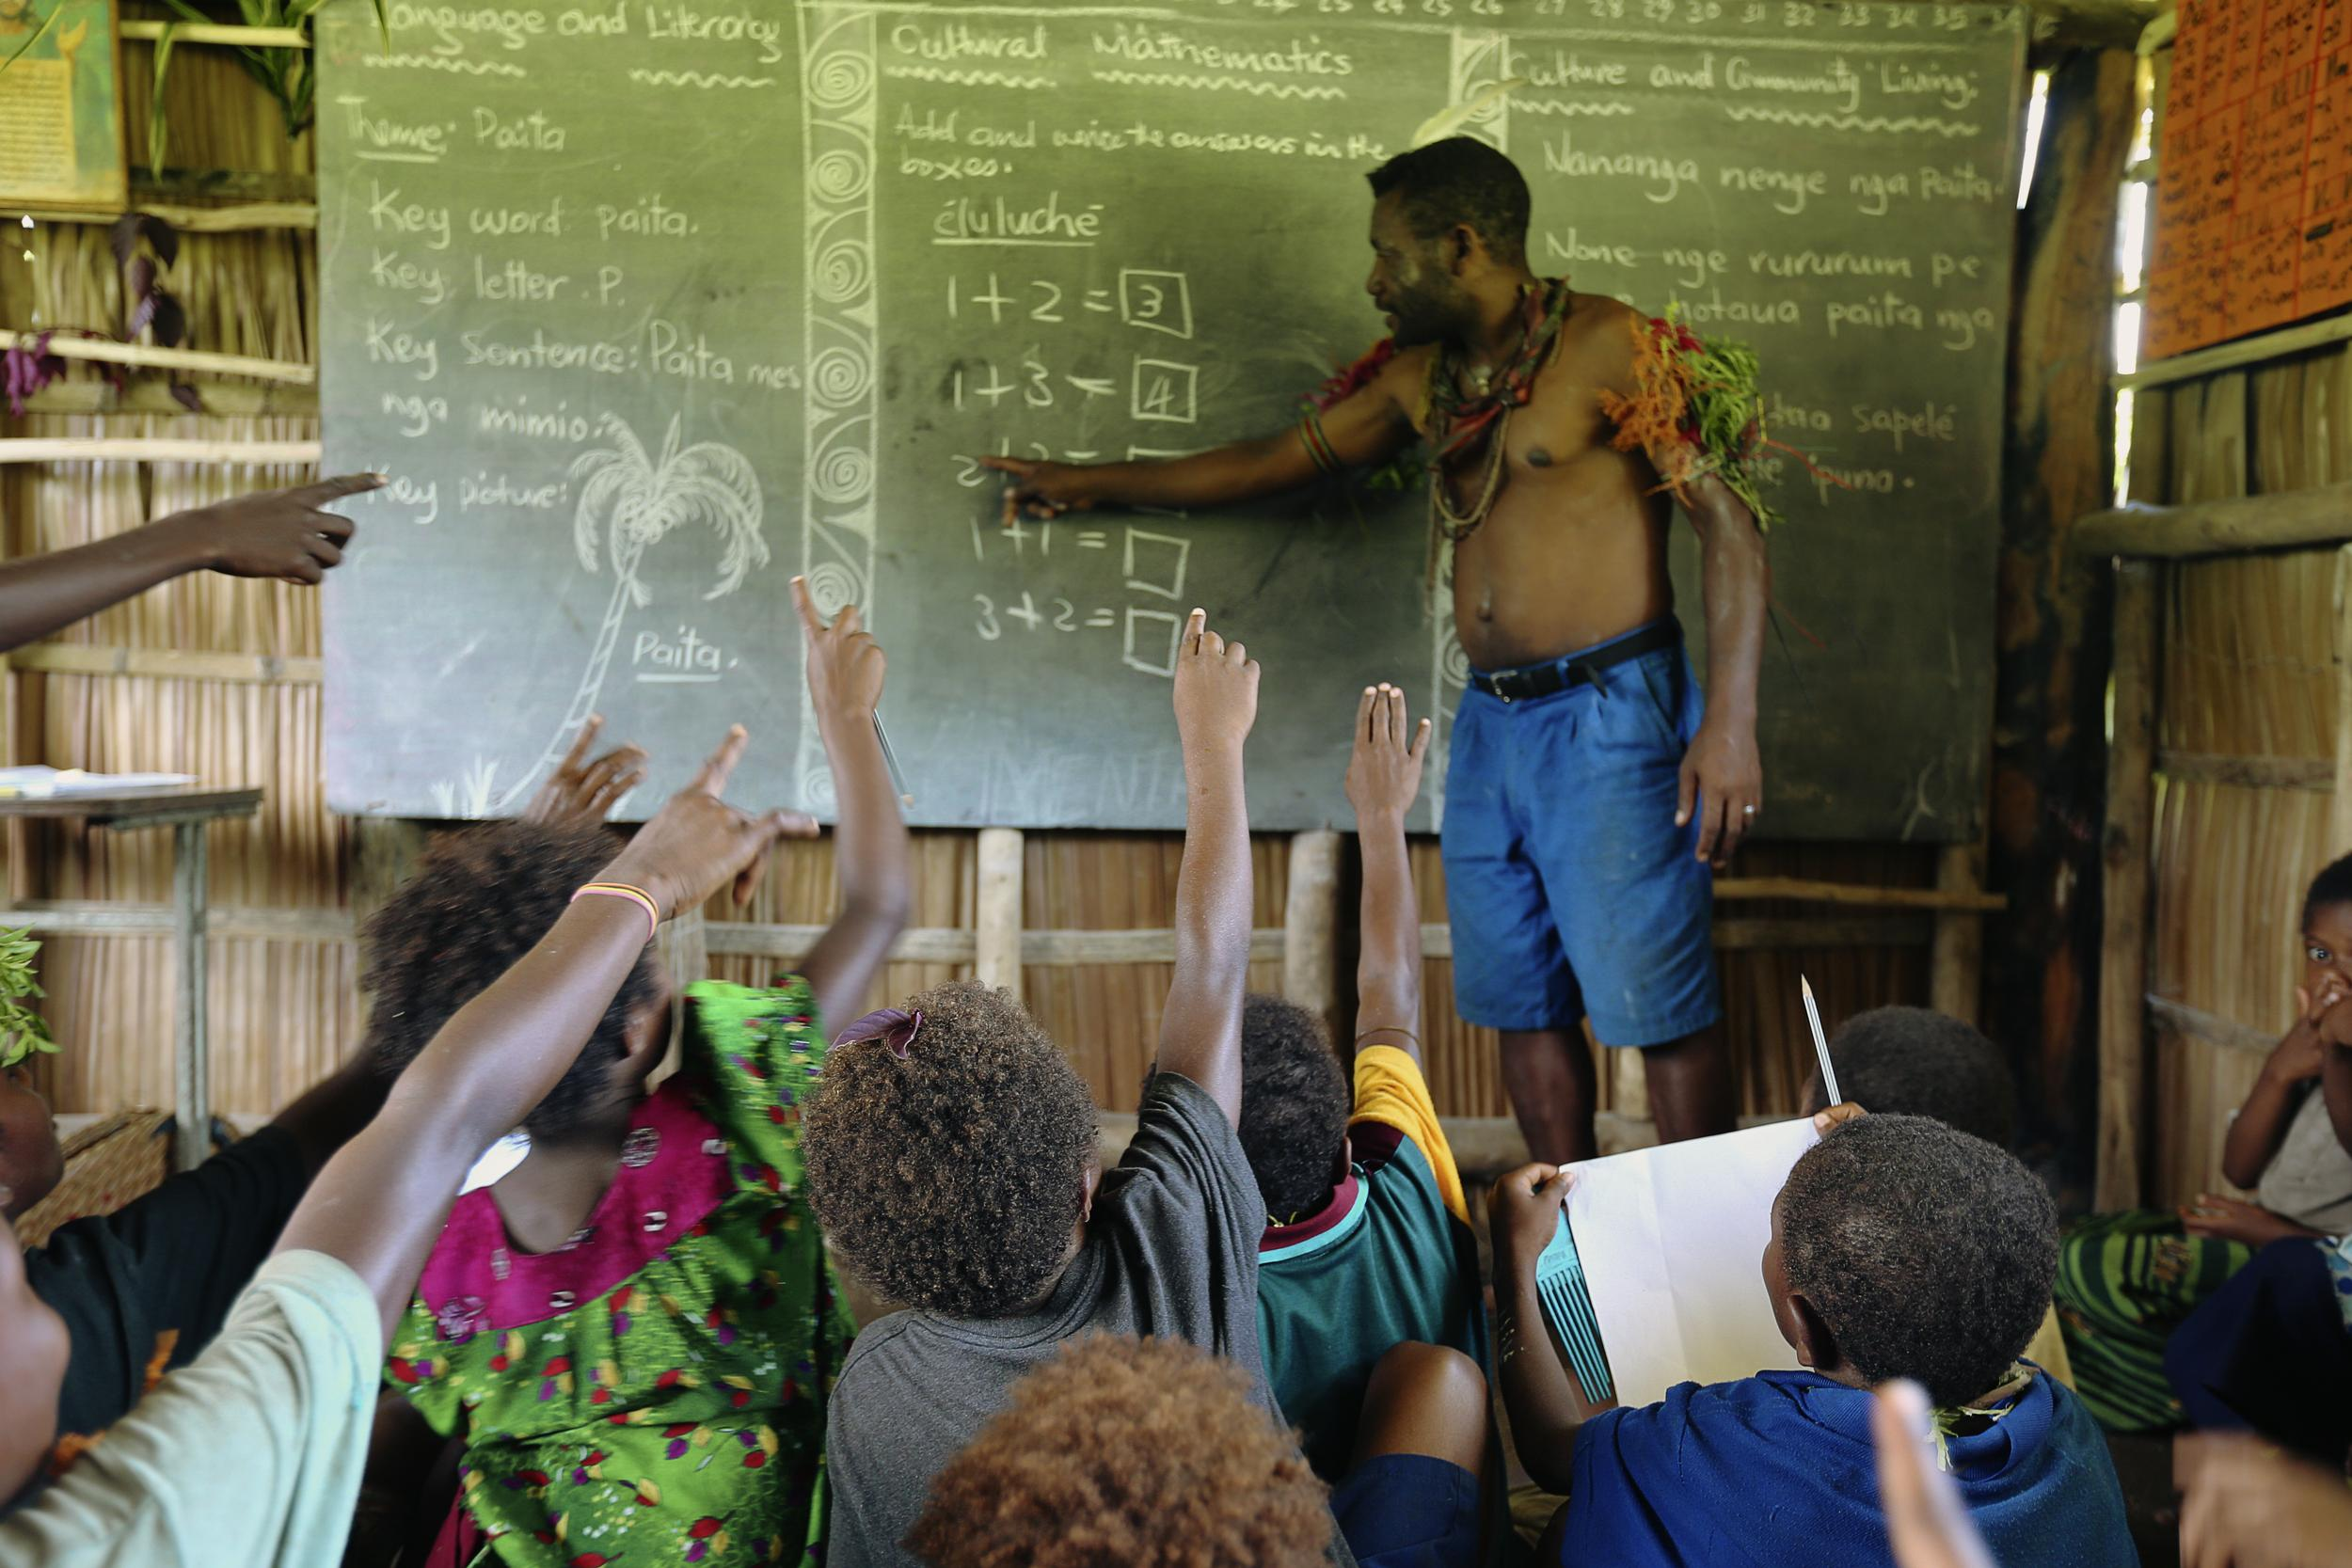 Tavolo Community School in Papua New Guinea. © Greenpeace / John Novis